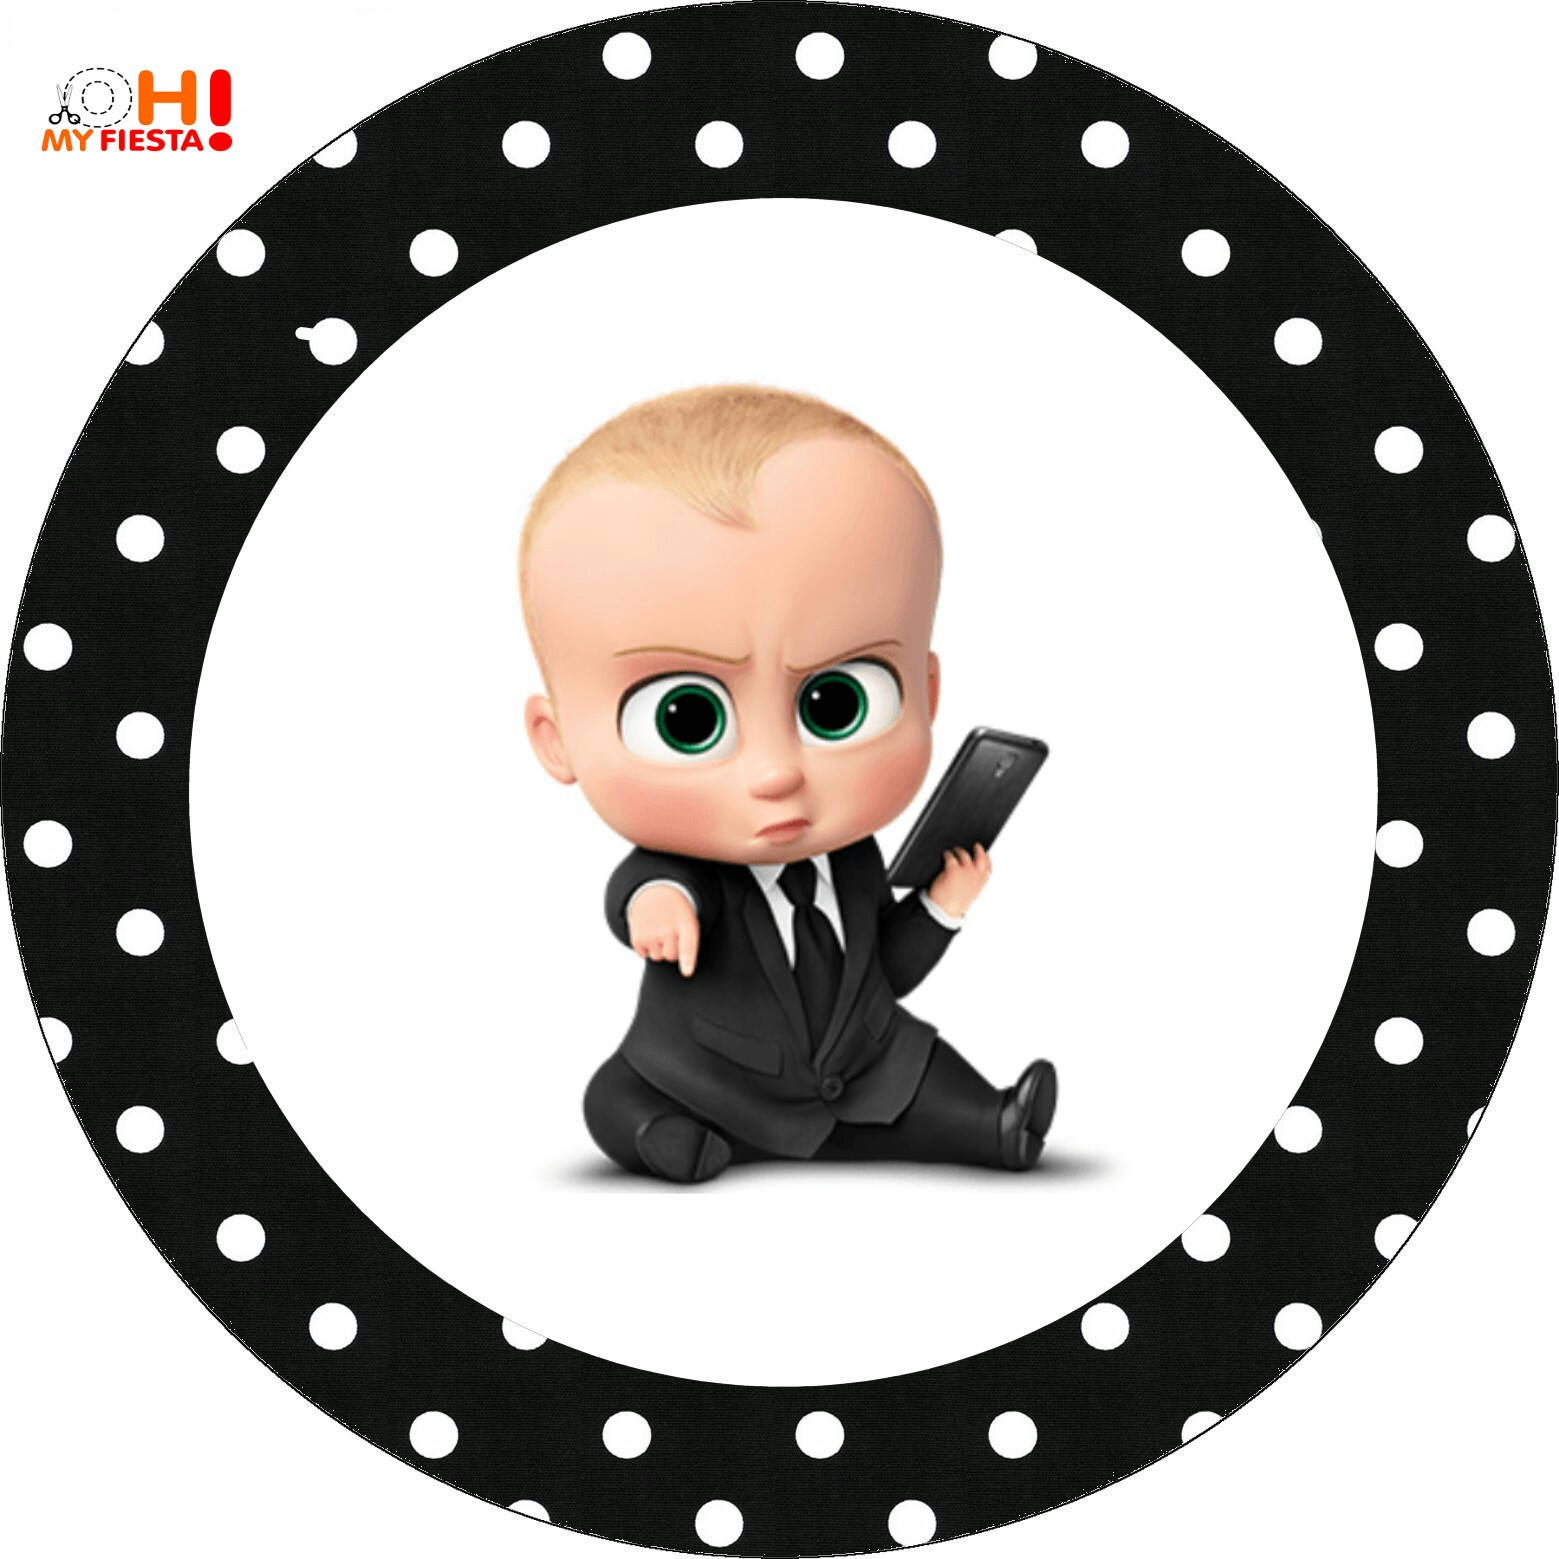 image regarding Boss Baby Printable named The Manager Little one Occasion Free of charge Printable Cupcake Wrappers and